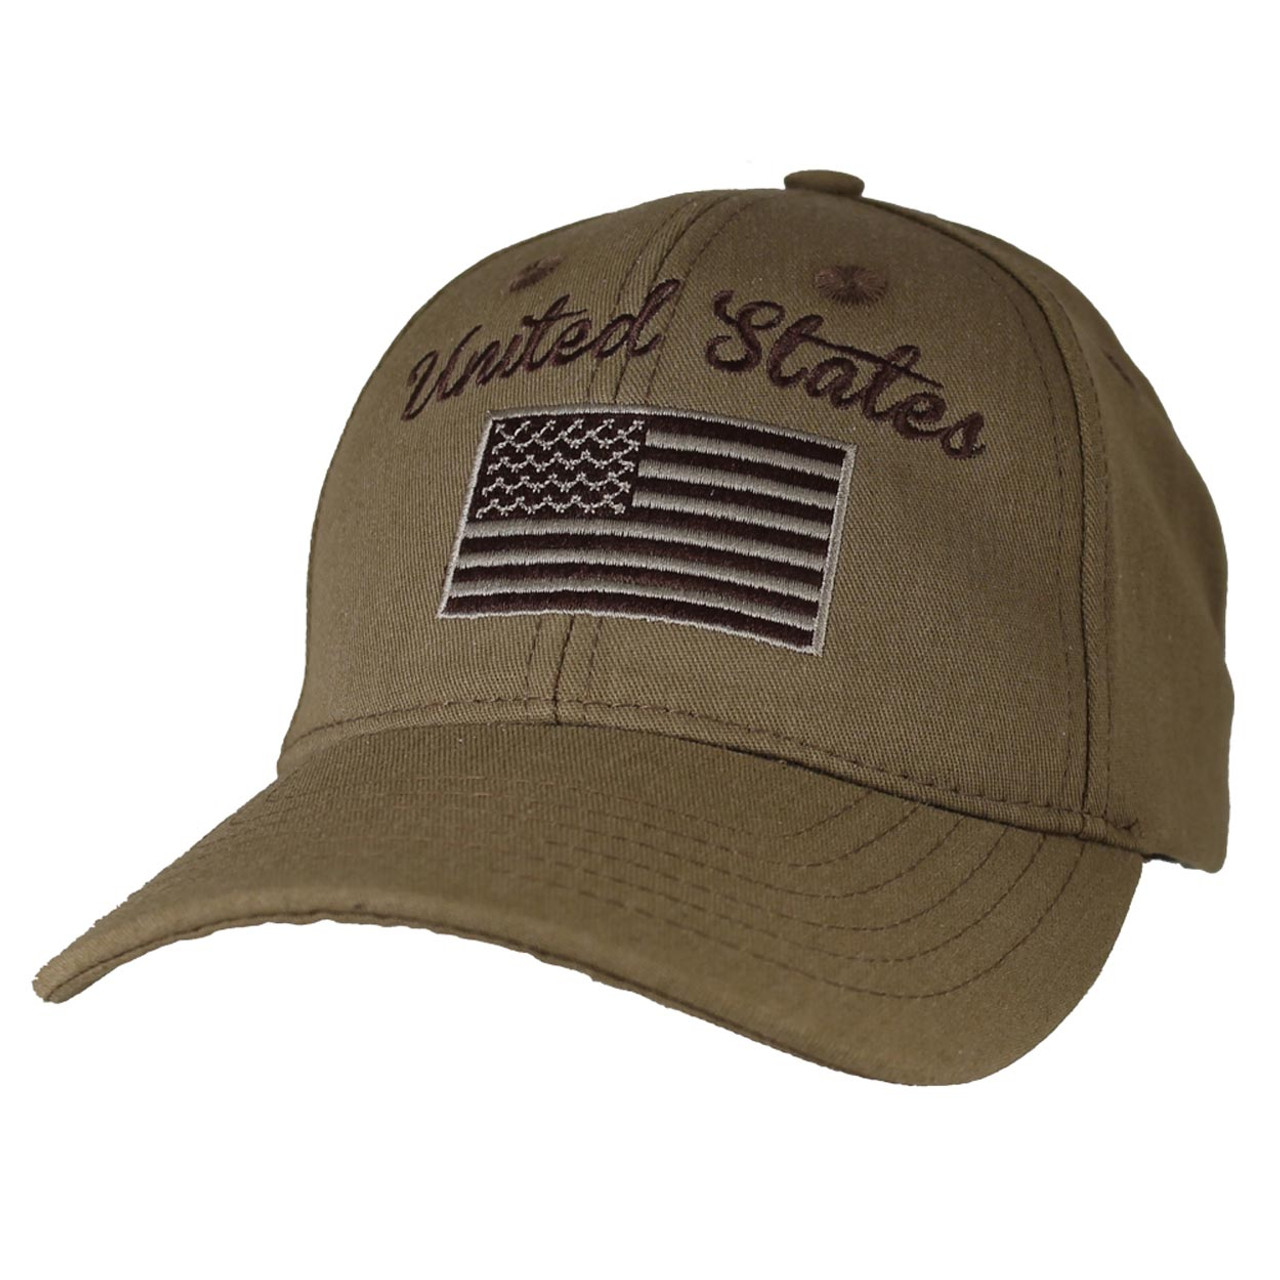 7de3abb9a35 Made In The USA Brown United States American Flag Embroidered Baseball Cap  Hat